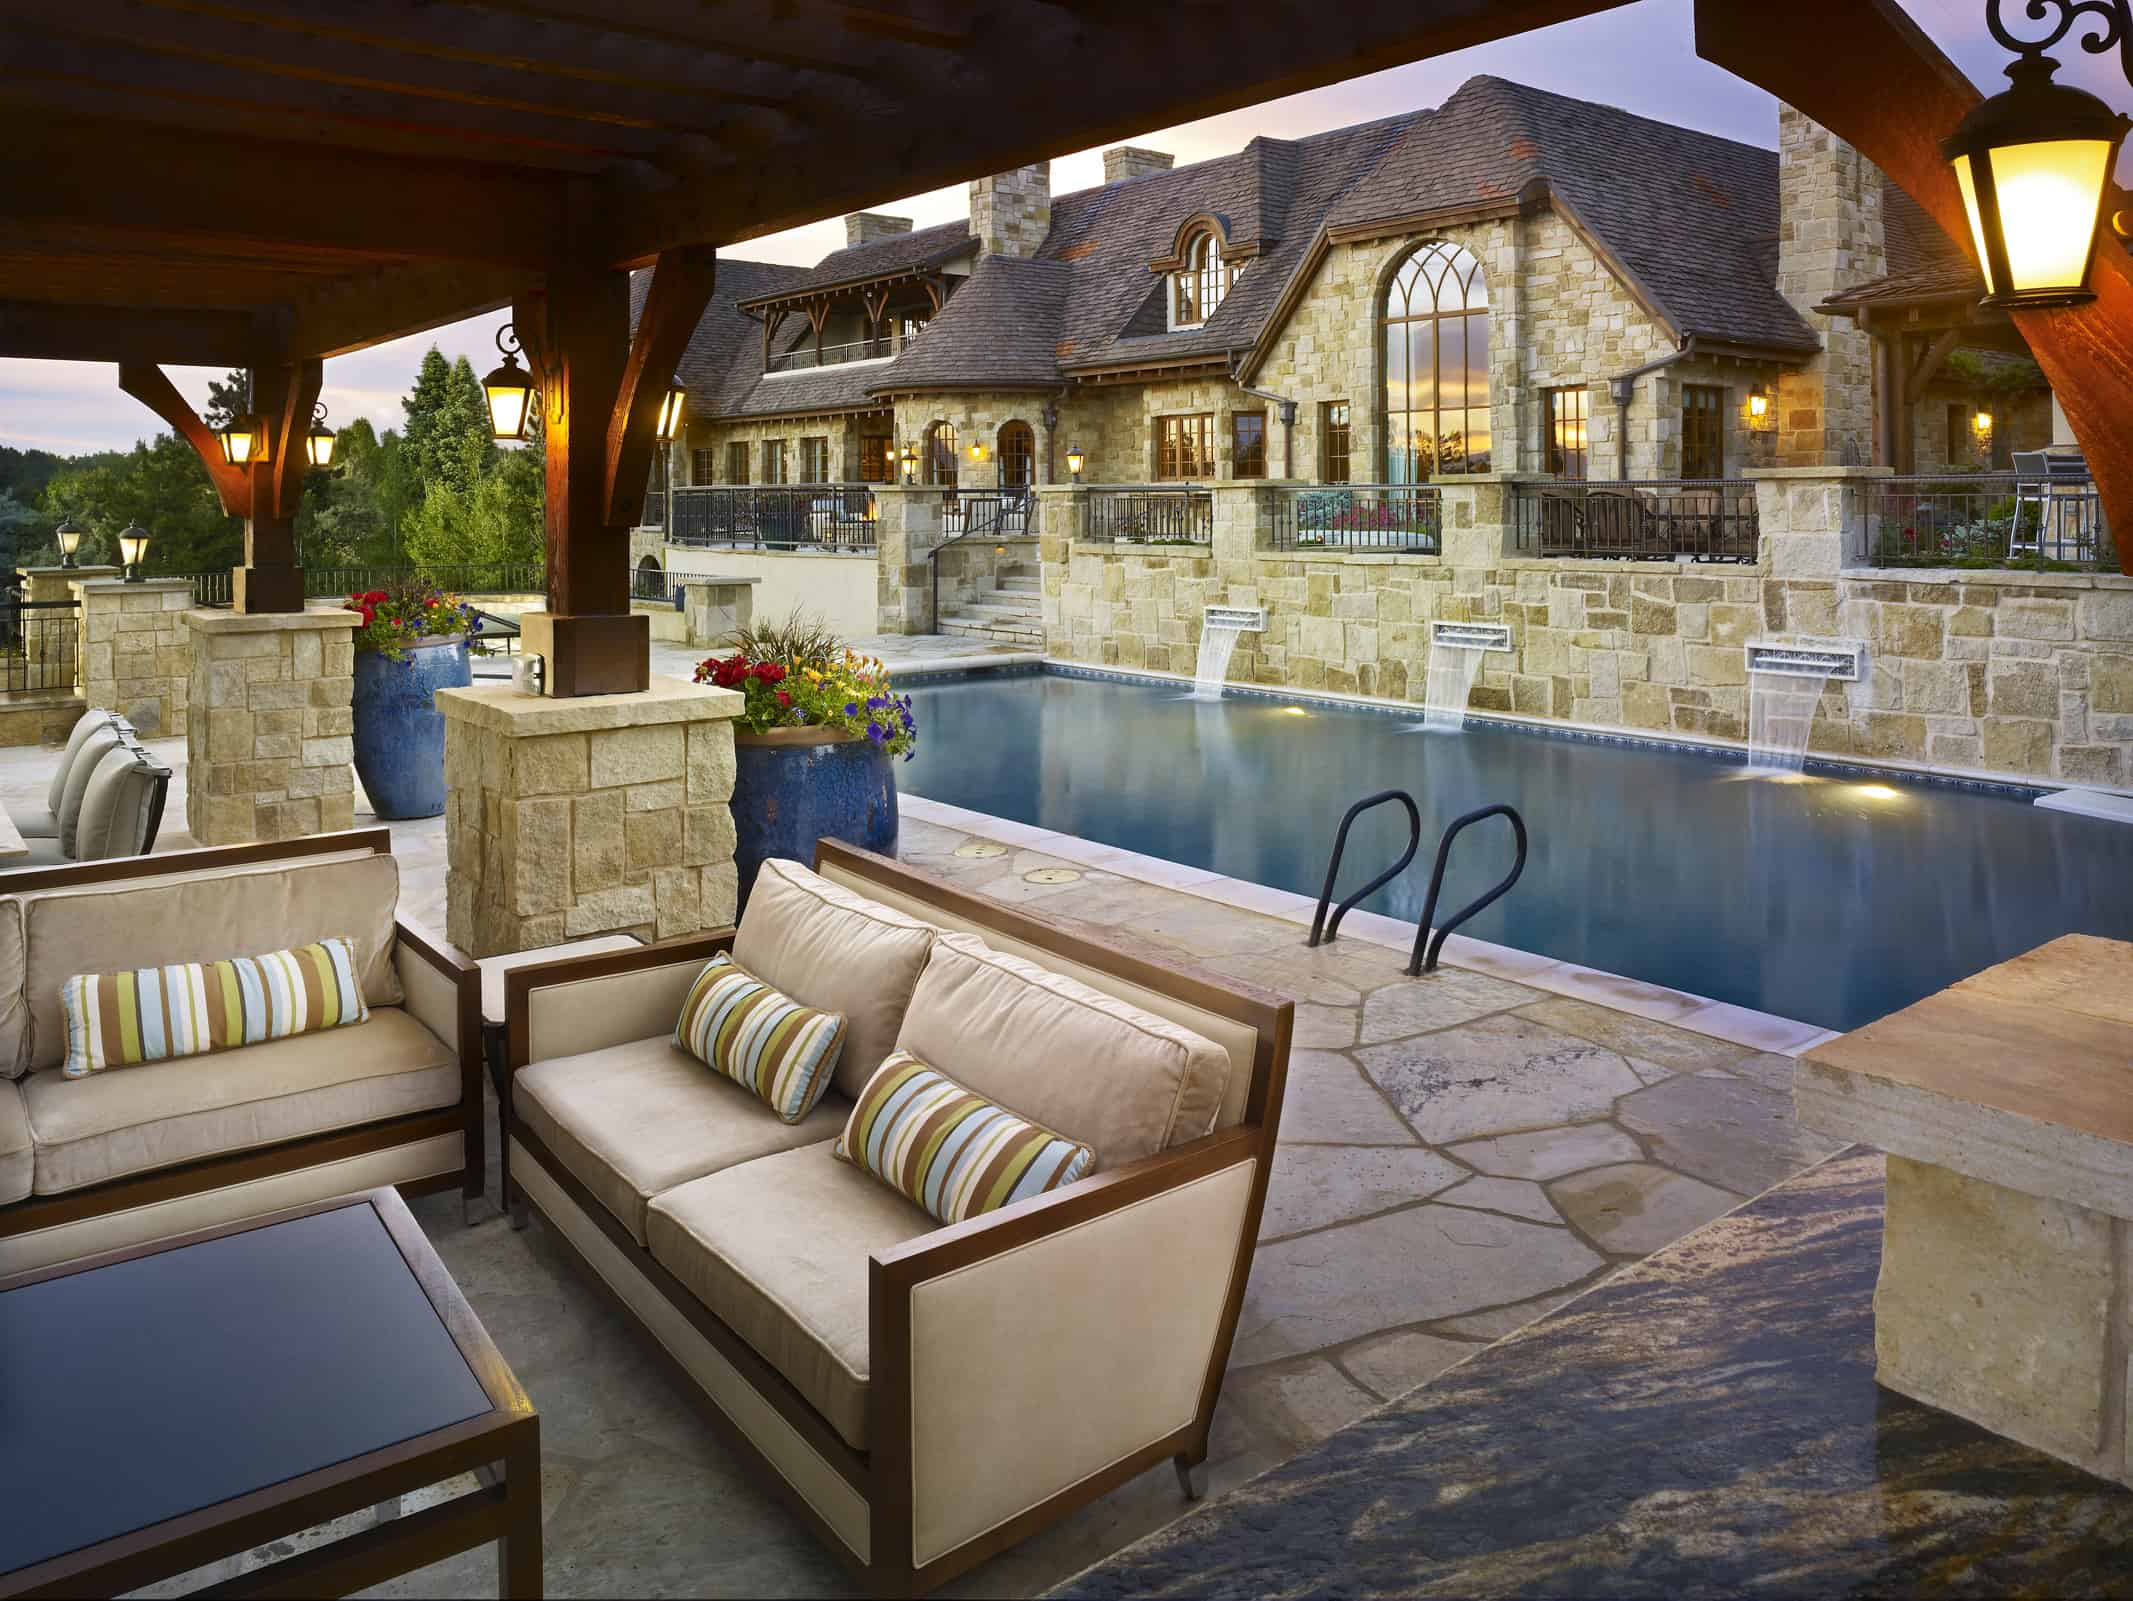 Enliven your Backyard with a Stunning Pool